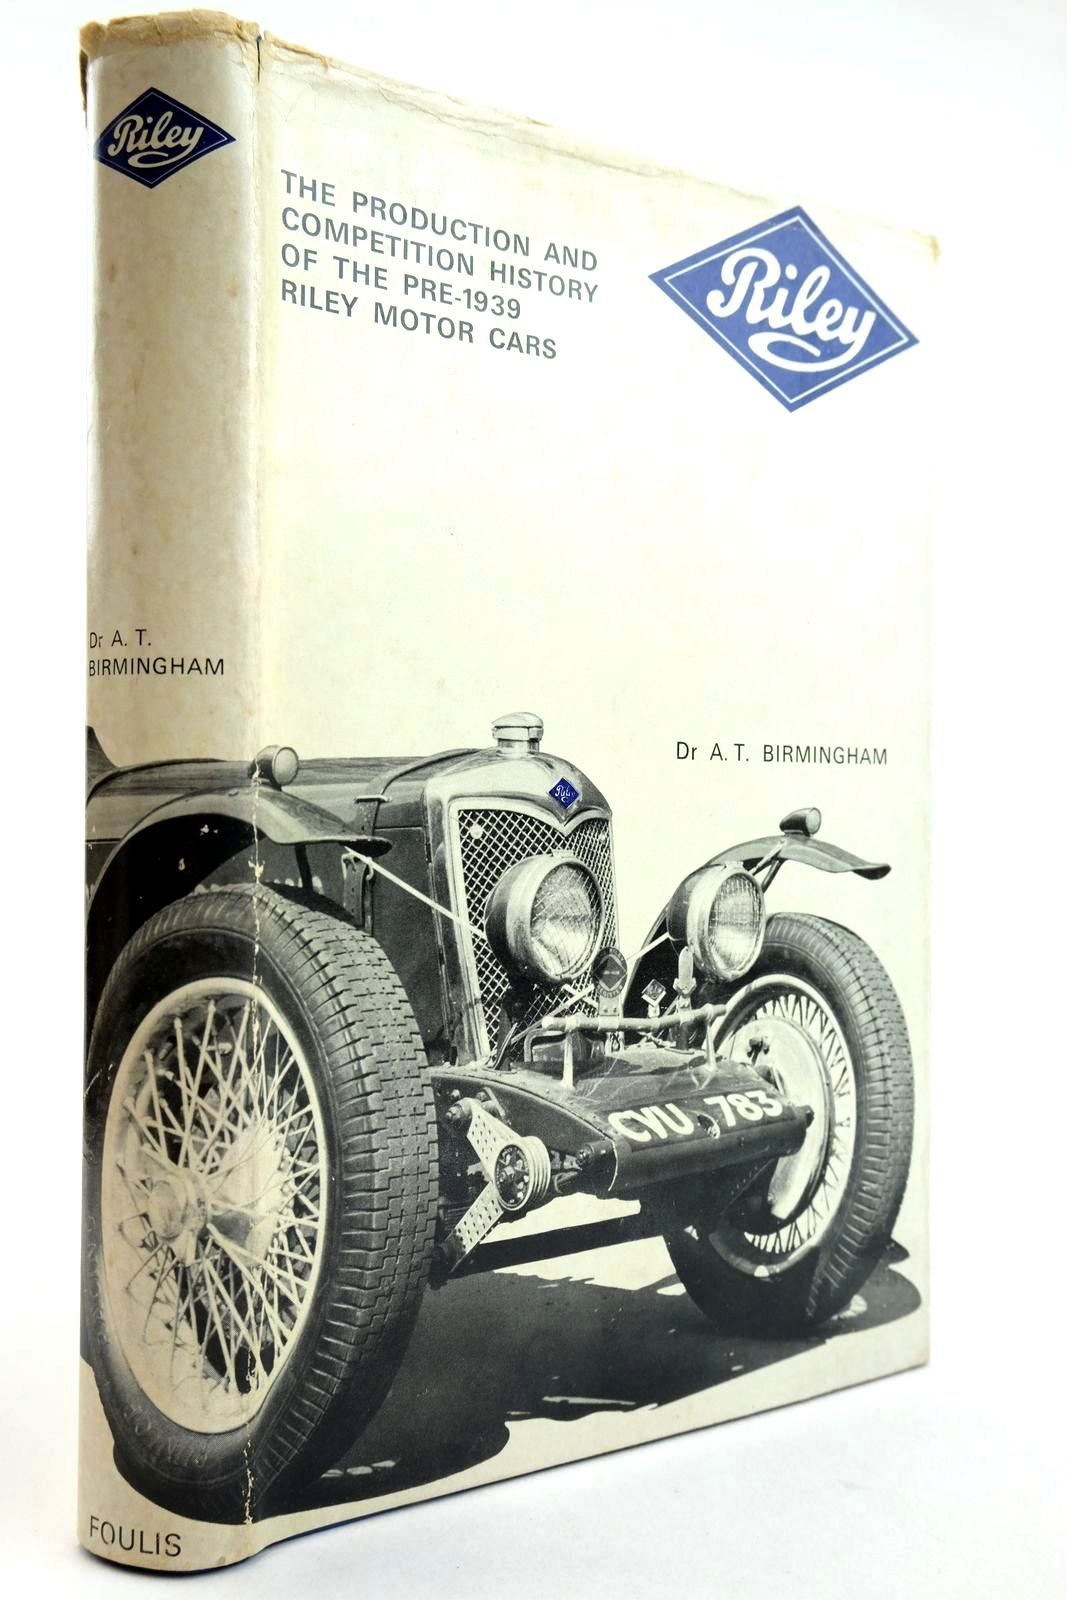 Photo of RILEY THE PRODUCTION AND COMPETITION HISTORY OF THE PRE-1939 RILEY MOTOR CARS written by Birmingham, A.T. published by G.T. Foulis & Co. Ltd. (STOCK CODE: 2132922)  for sale by Stella & Rose's Books